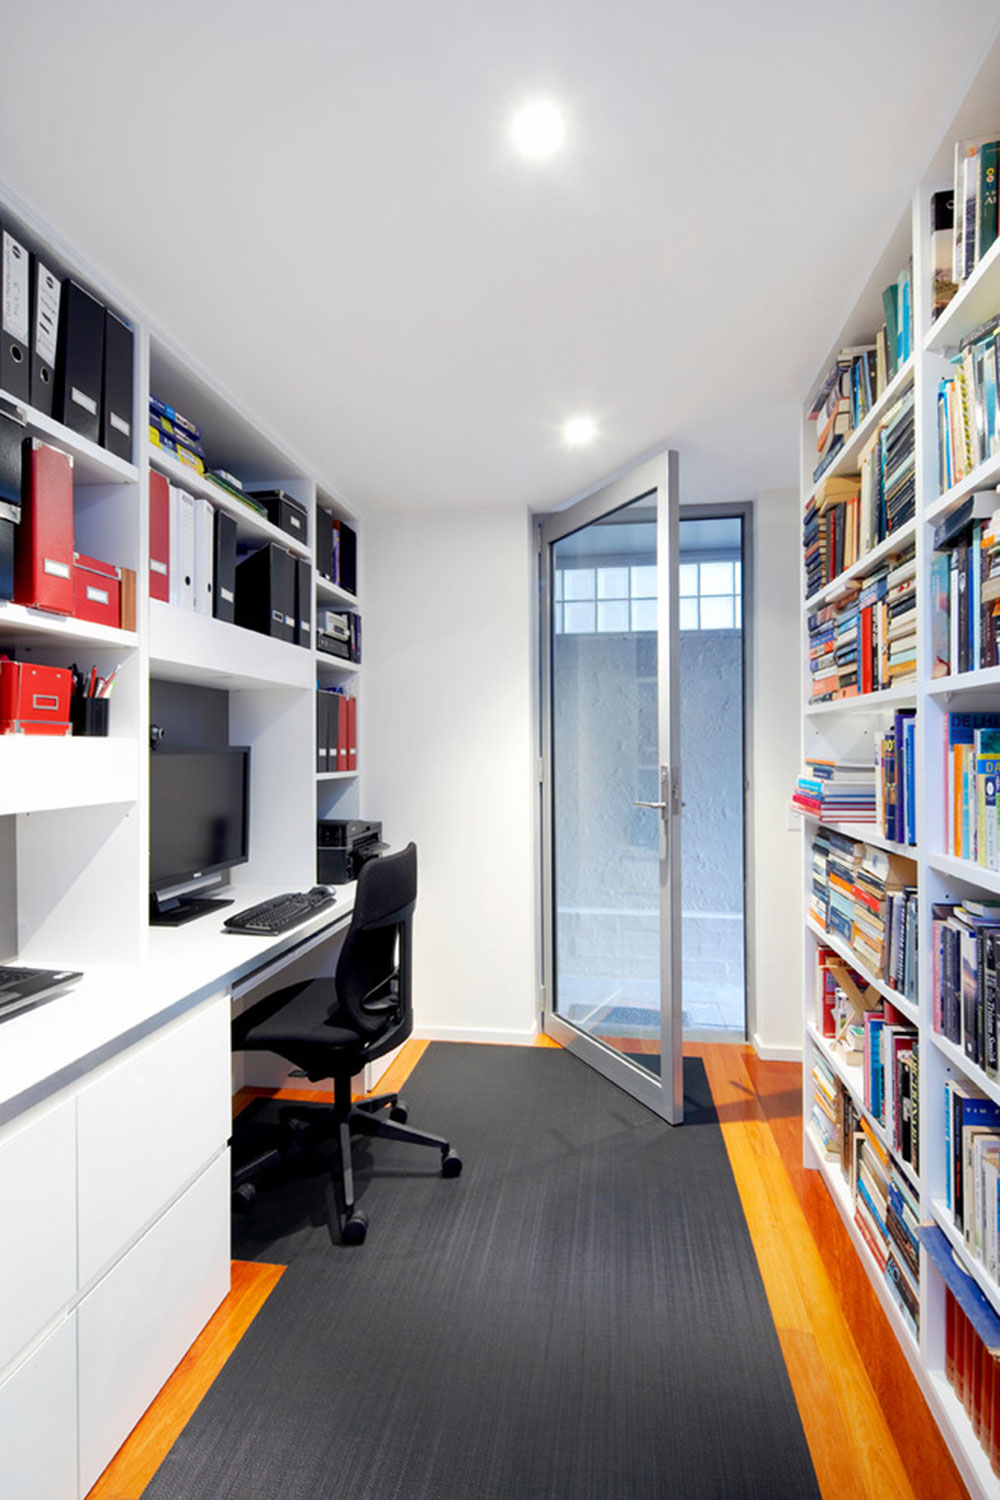 Decorating your study room with style2 decorating your study room with